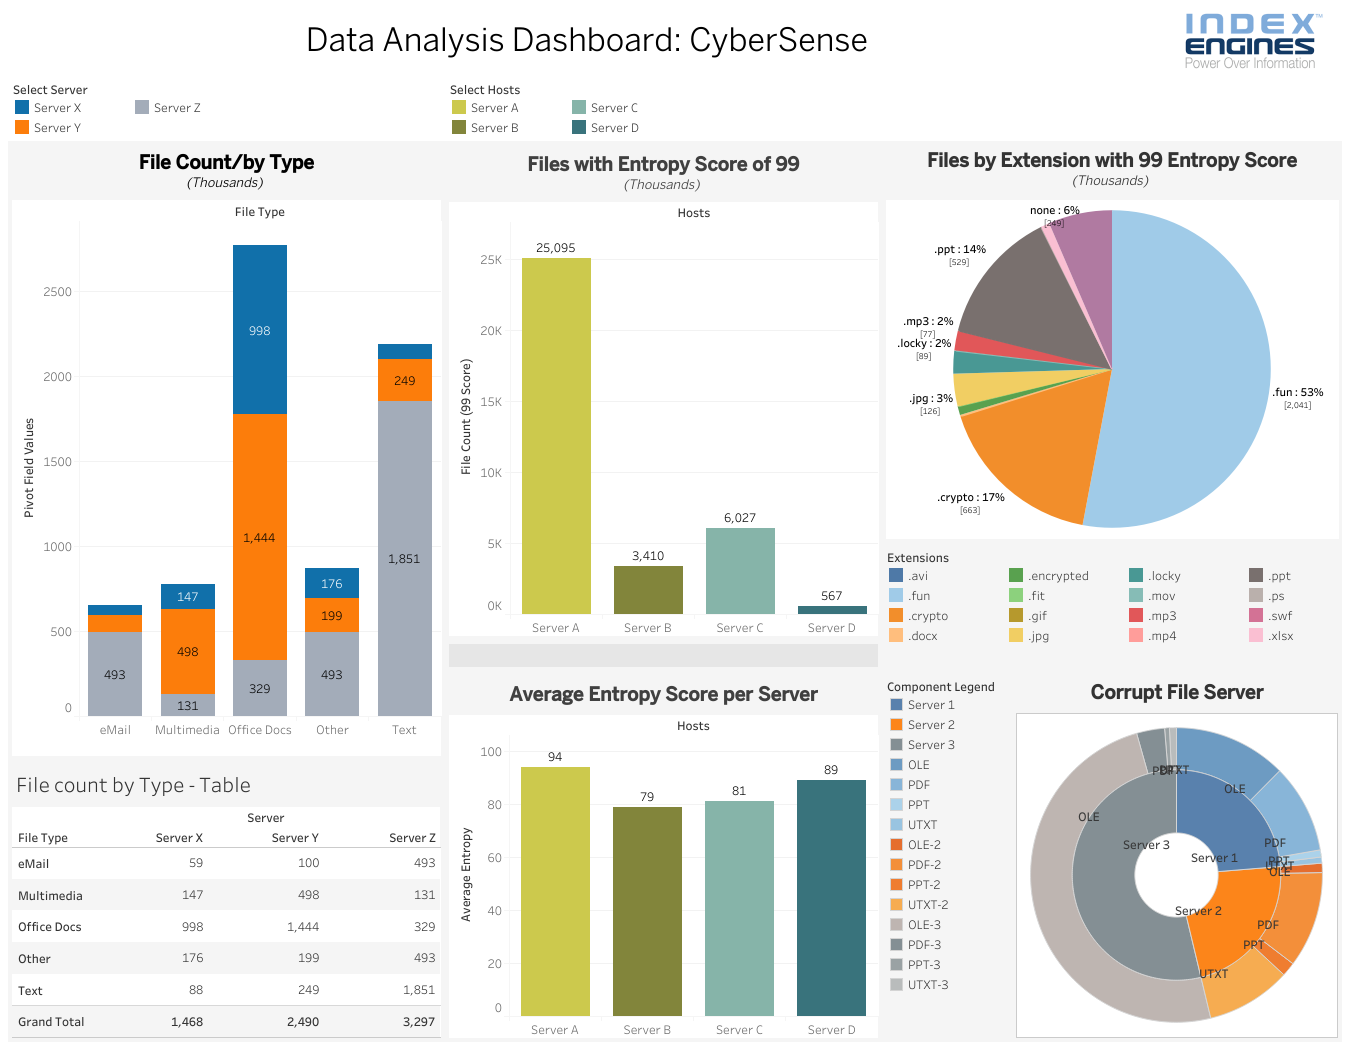 Data Analysis Dashboard CyberSense